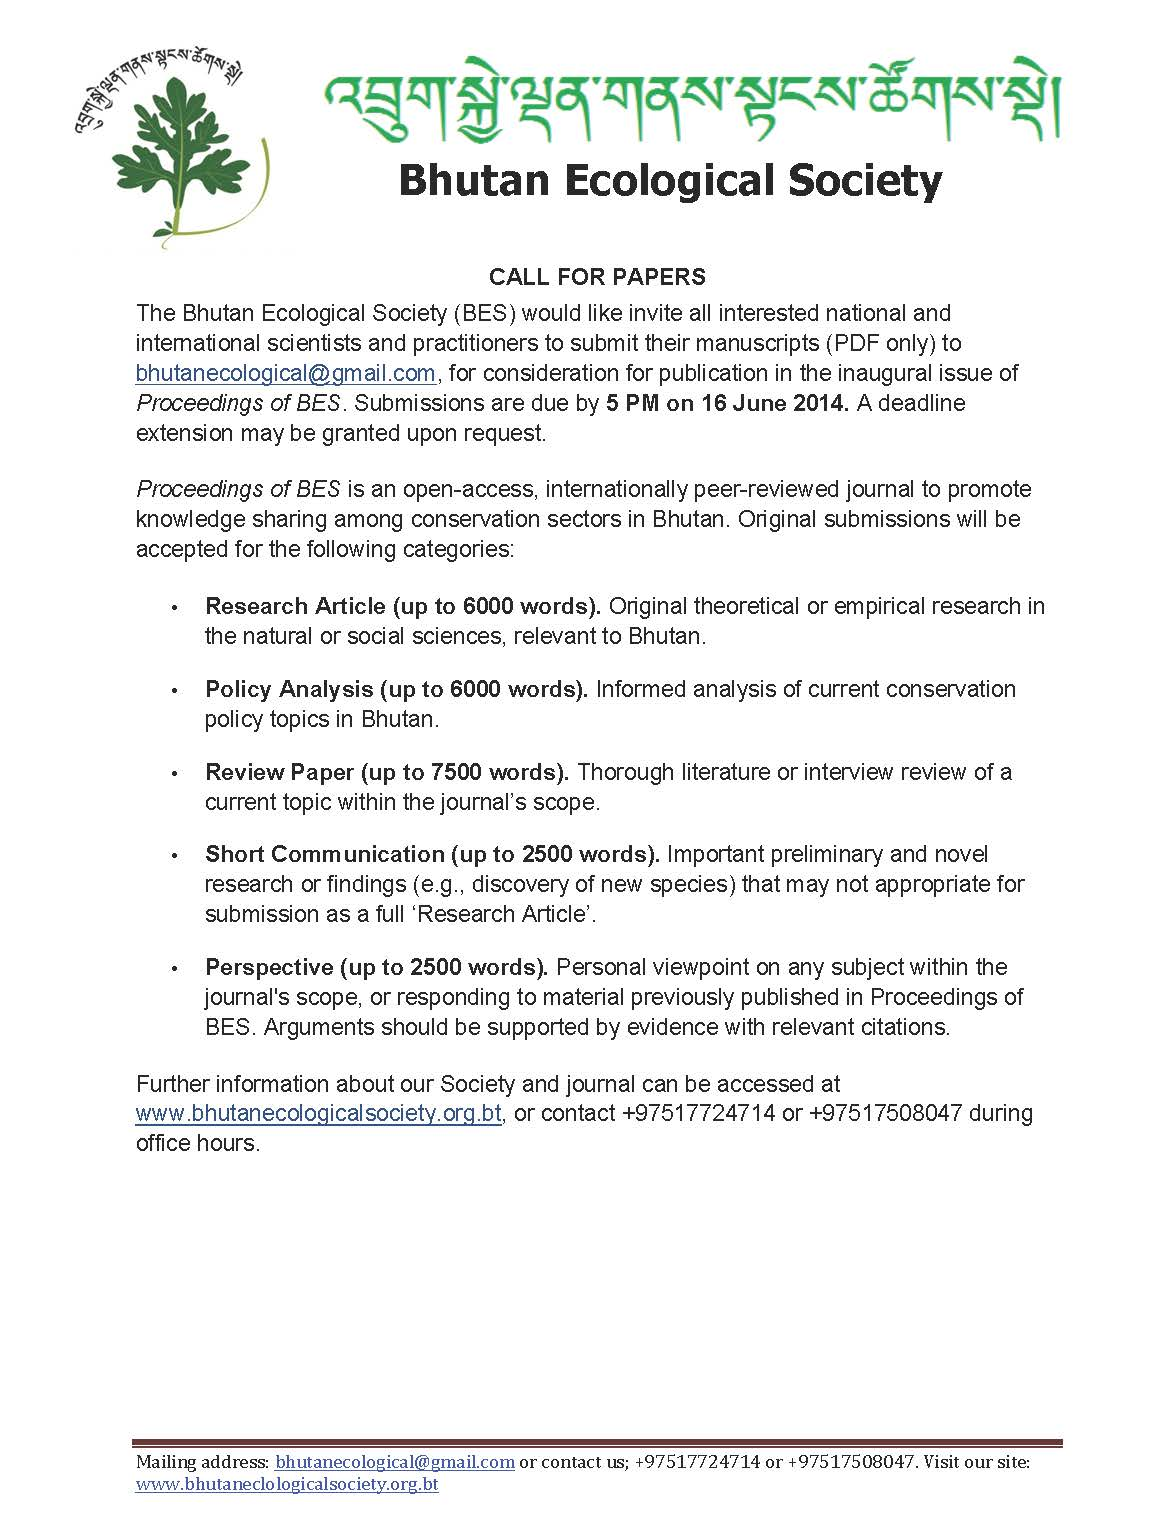 BES announcement_Call For papers_intl